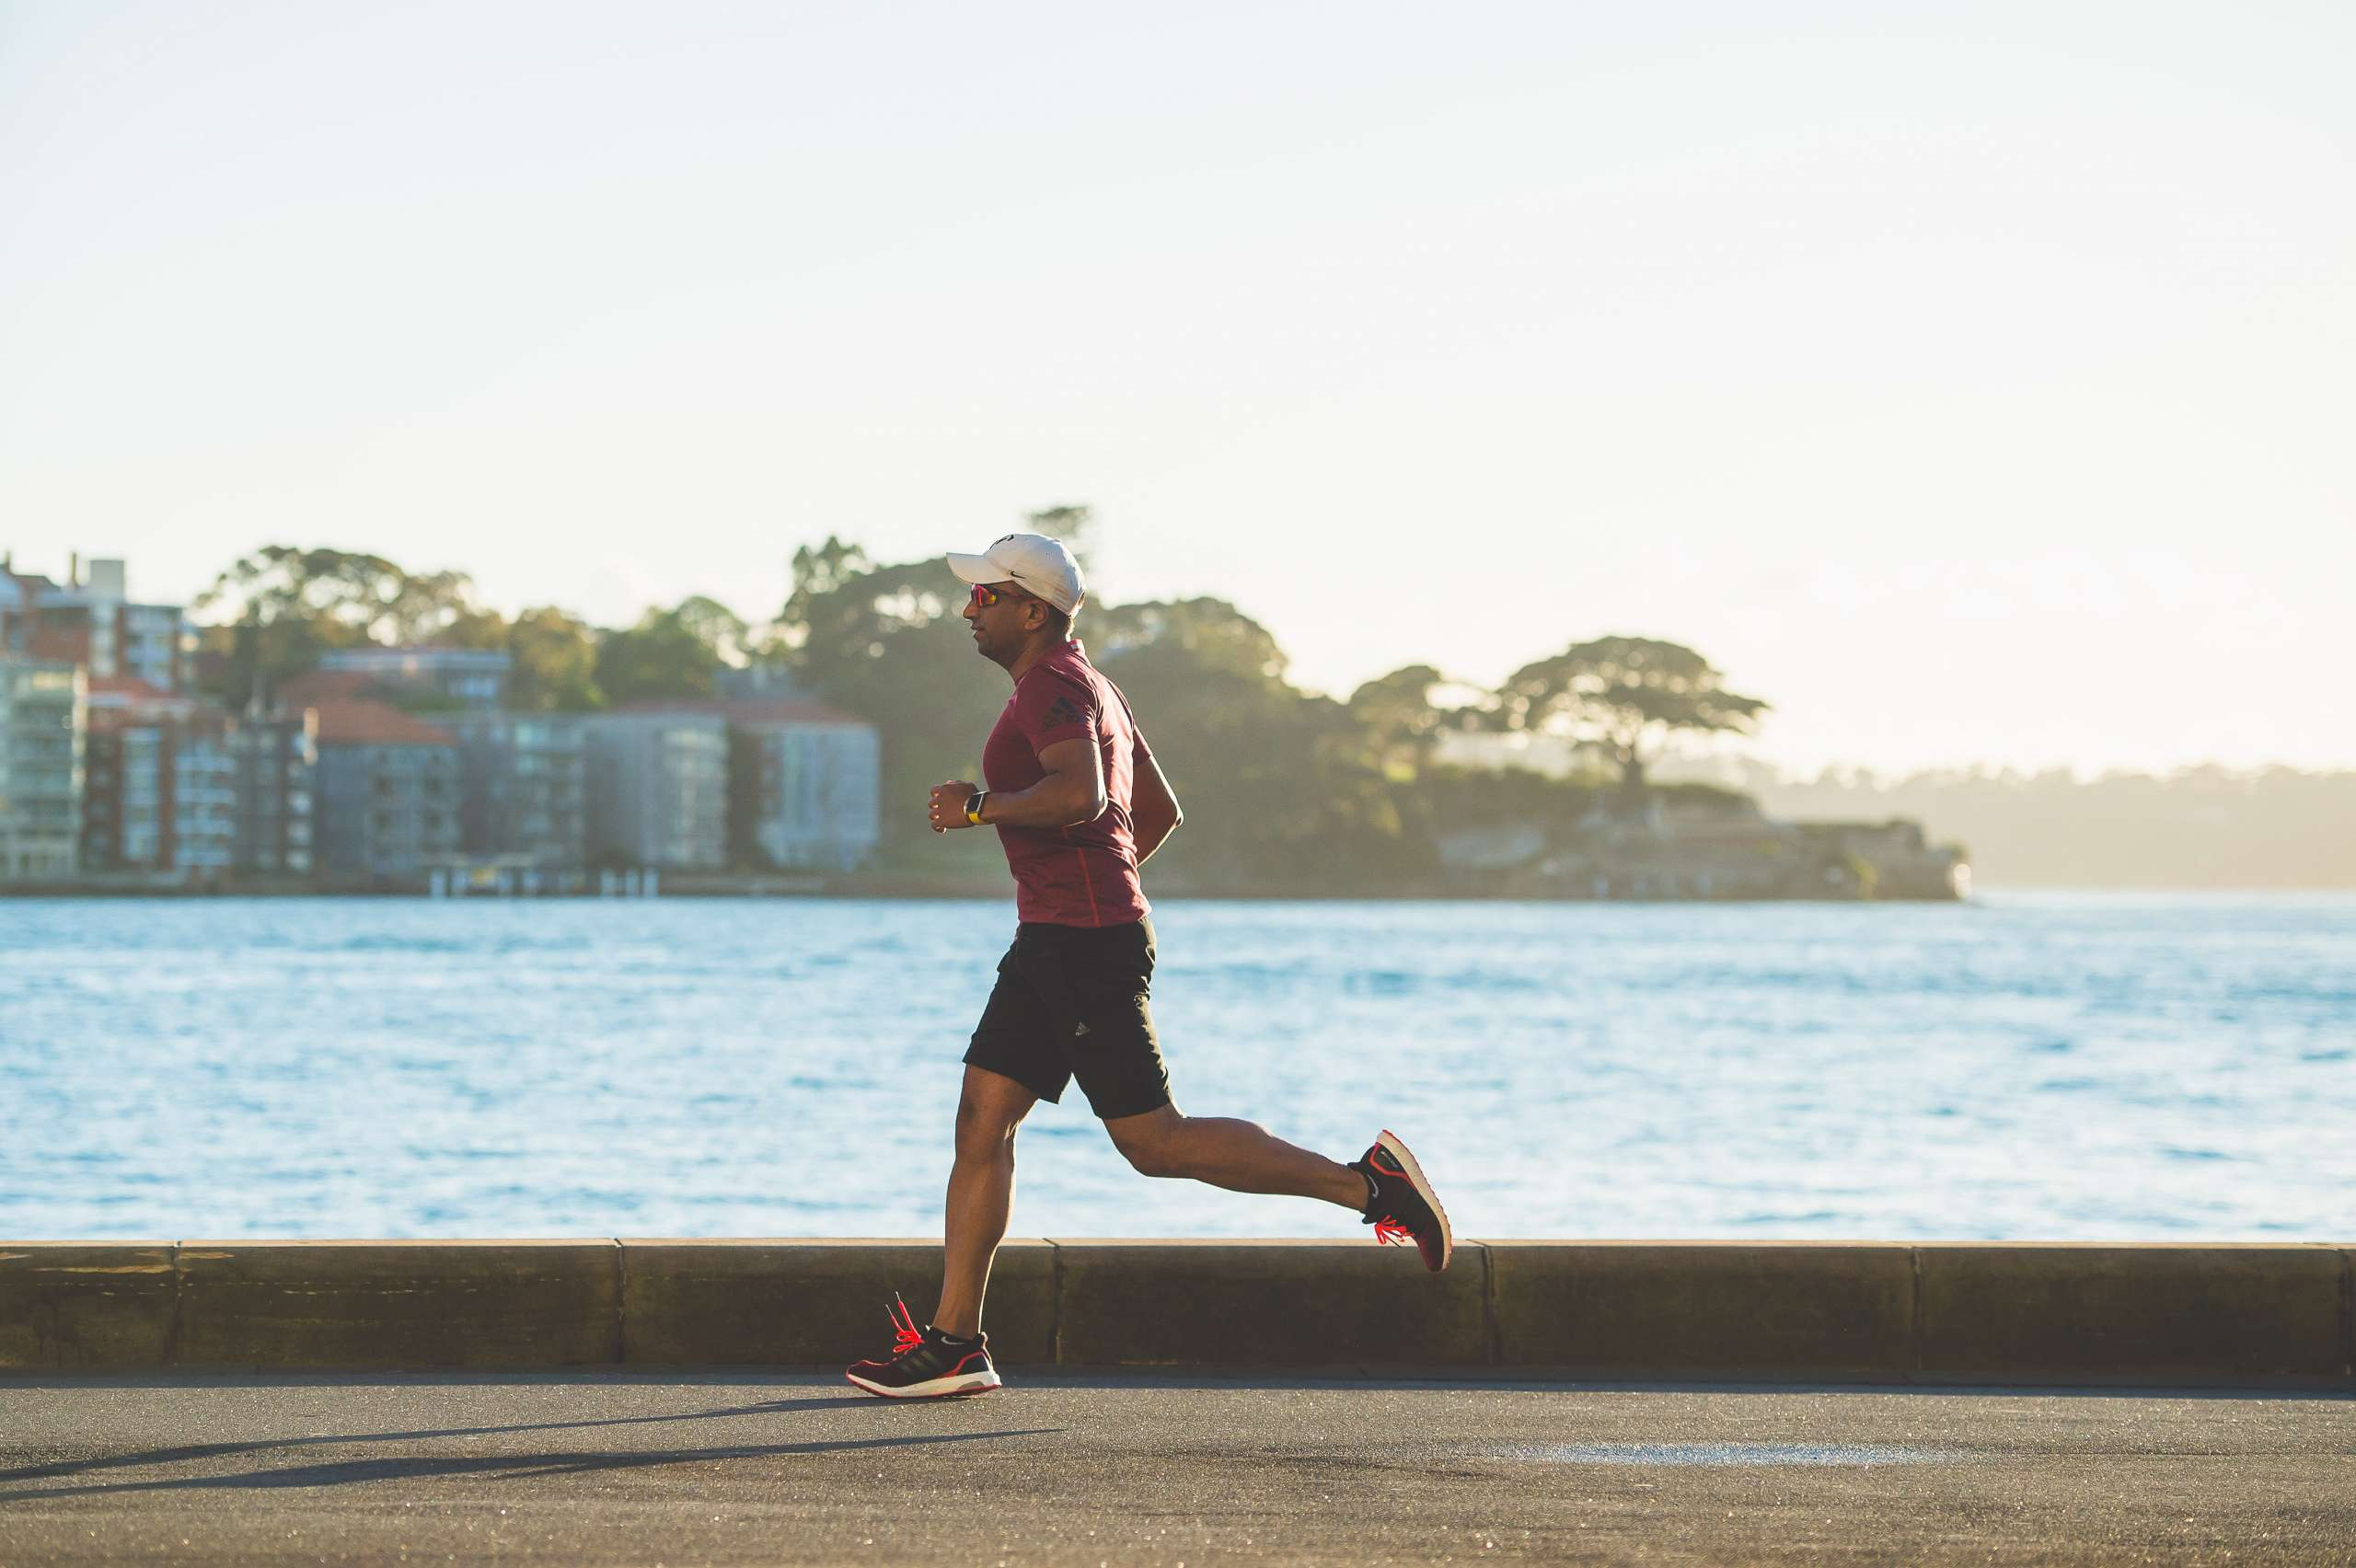 A man runs by a body of water early in the morning.